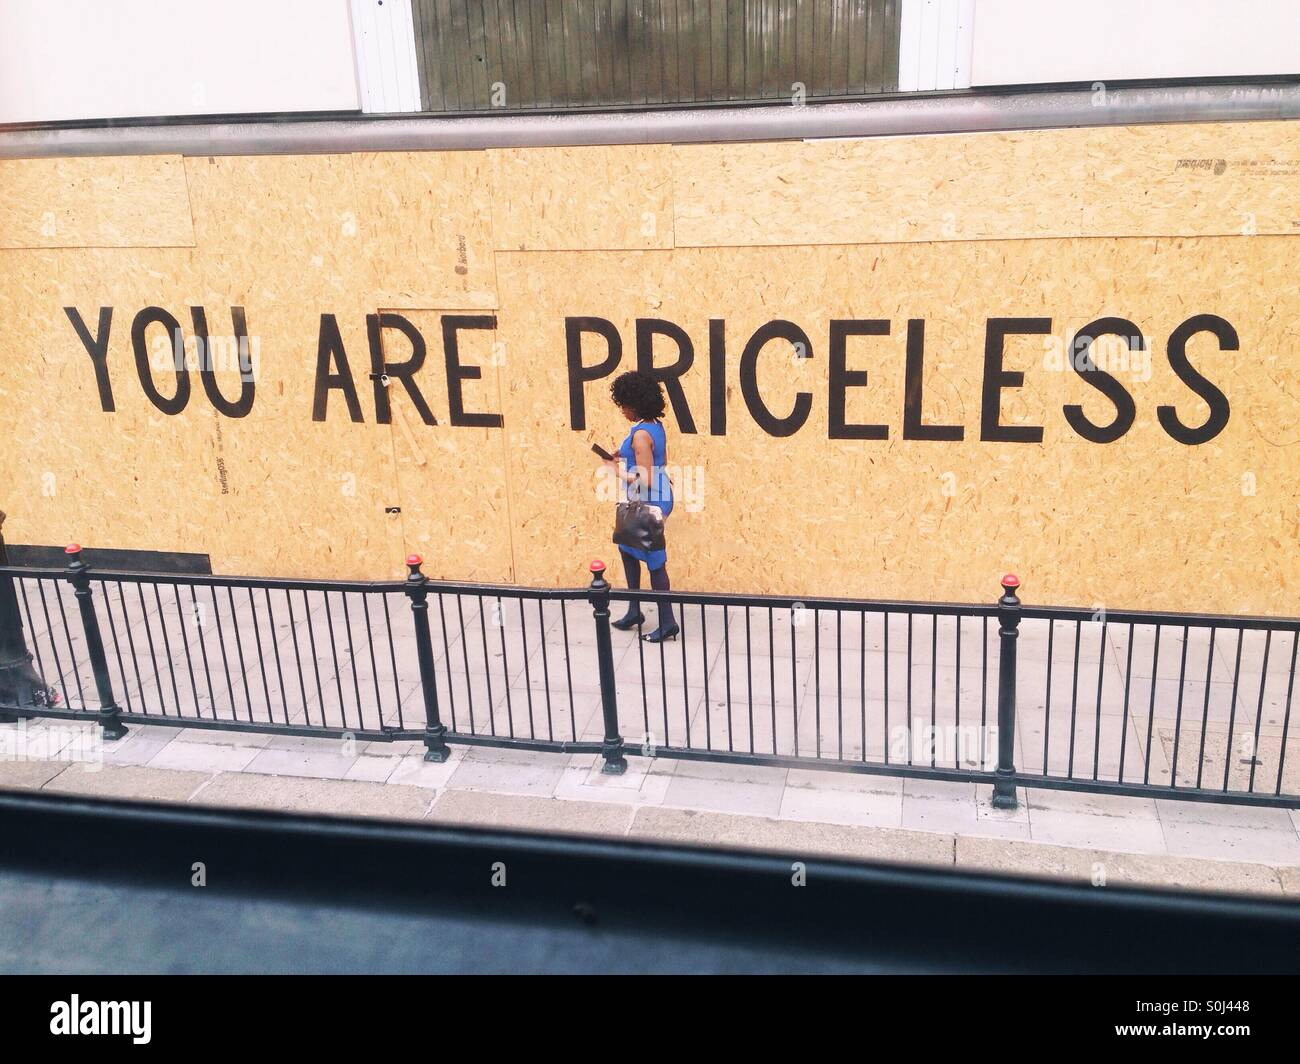 You are priceless - Stock Image